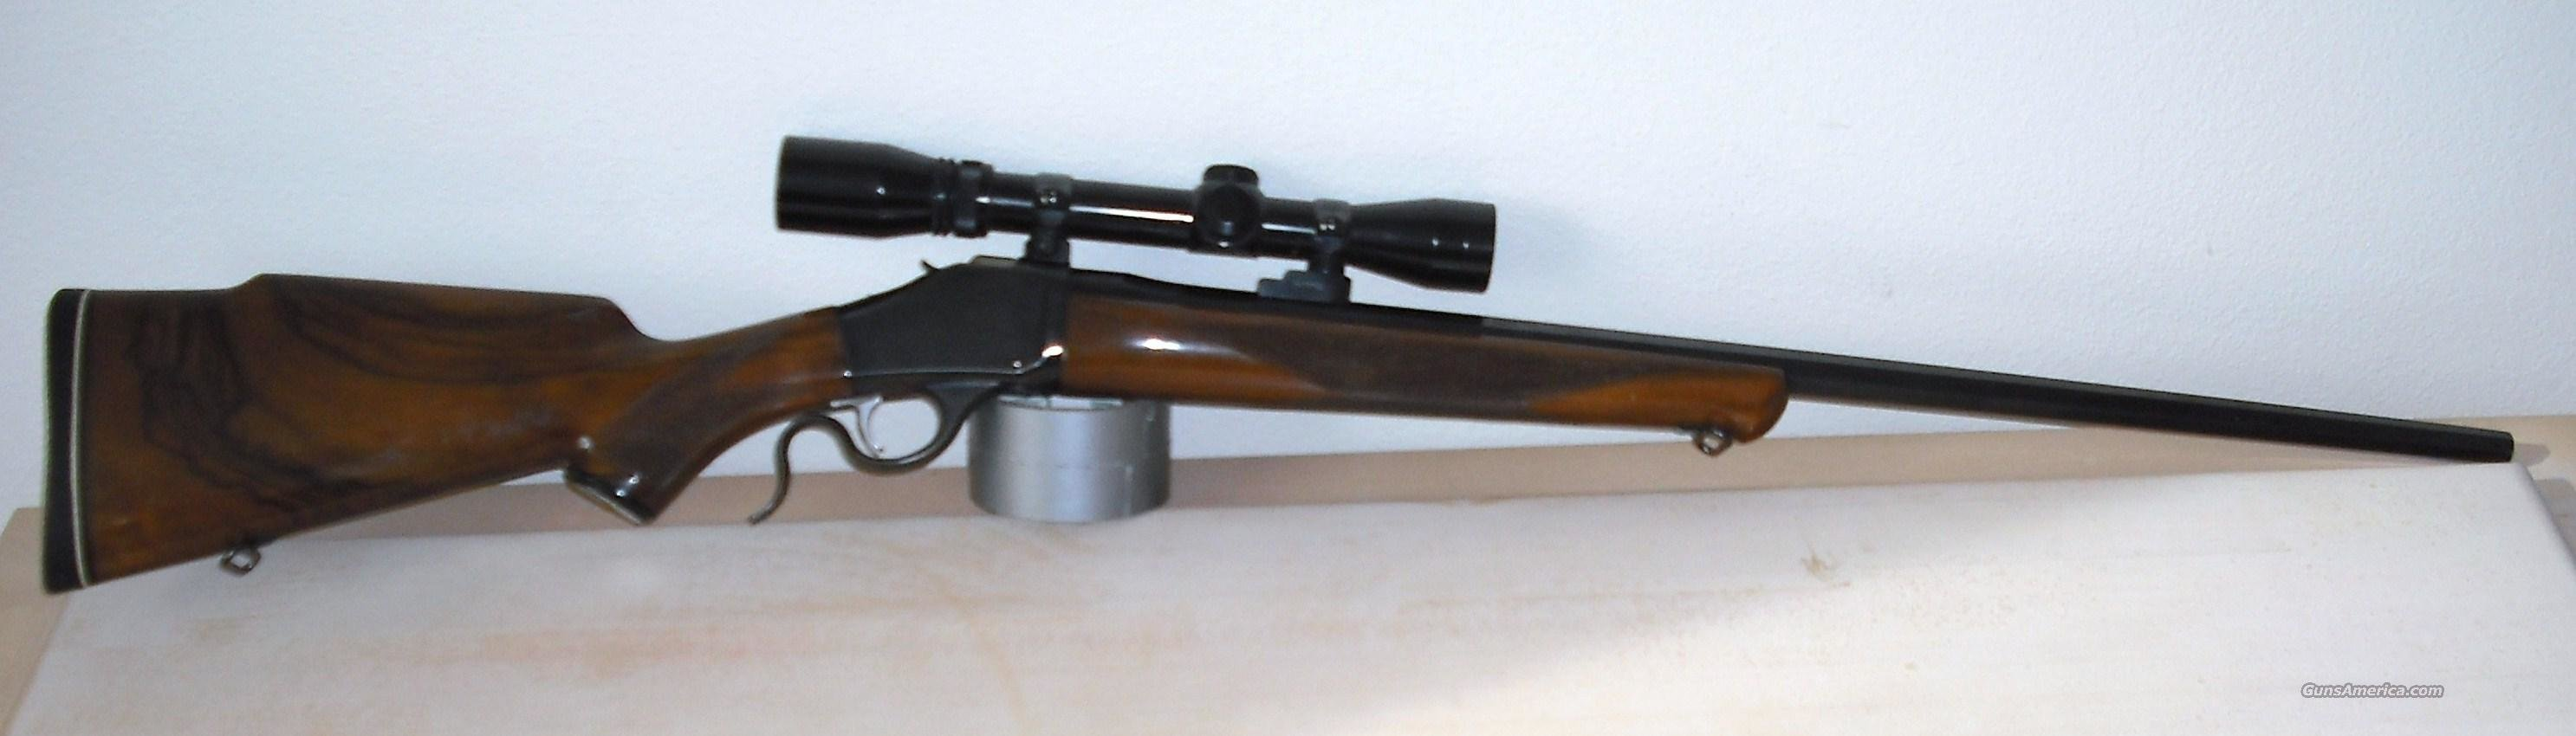 BROWNING MOD 78, 6MM REM, W/SCOPE  Guns > Rifles > Browning Rifles > Singe Shot